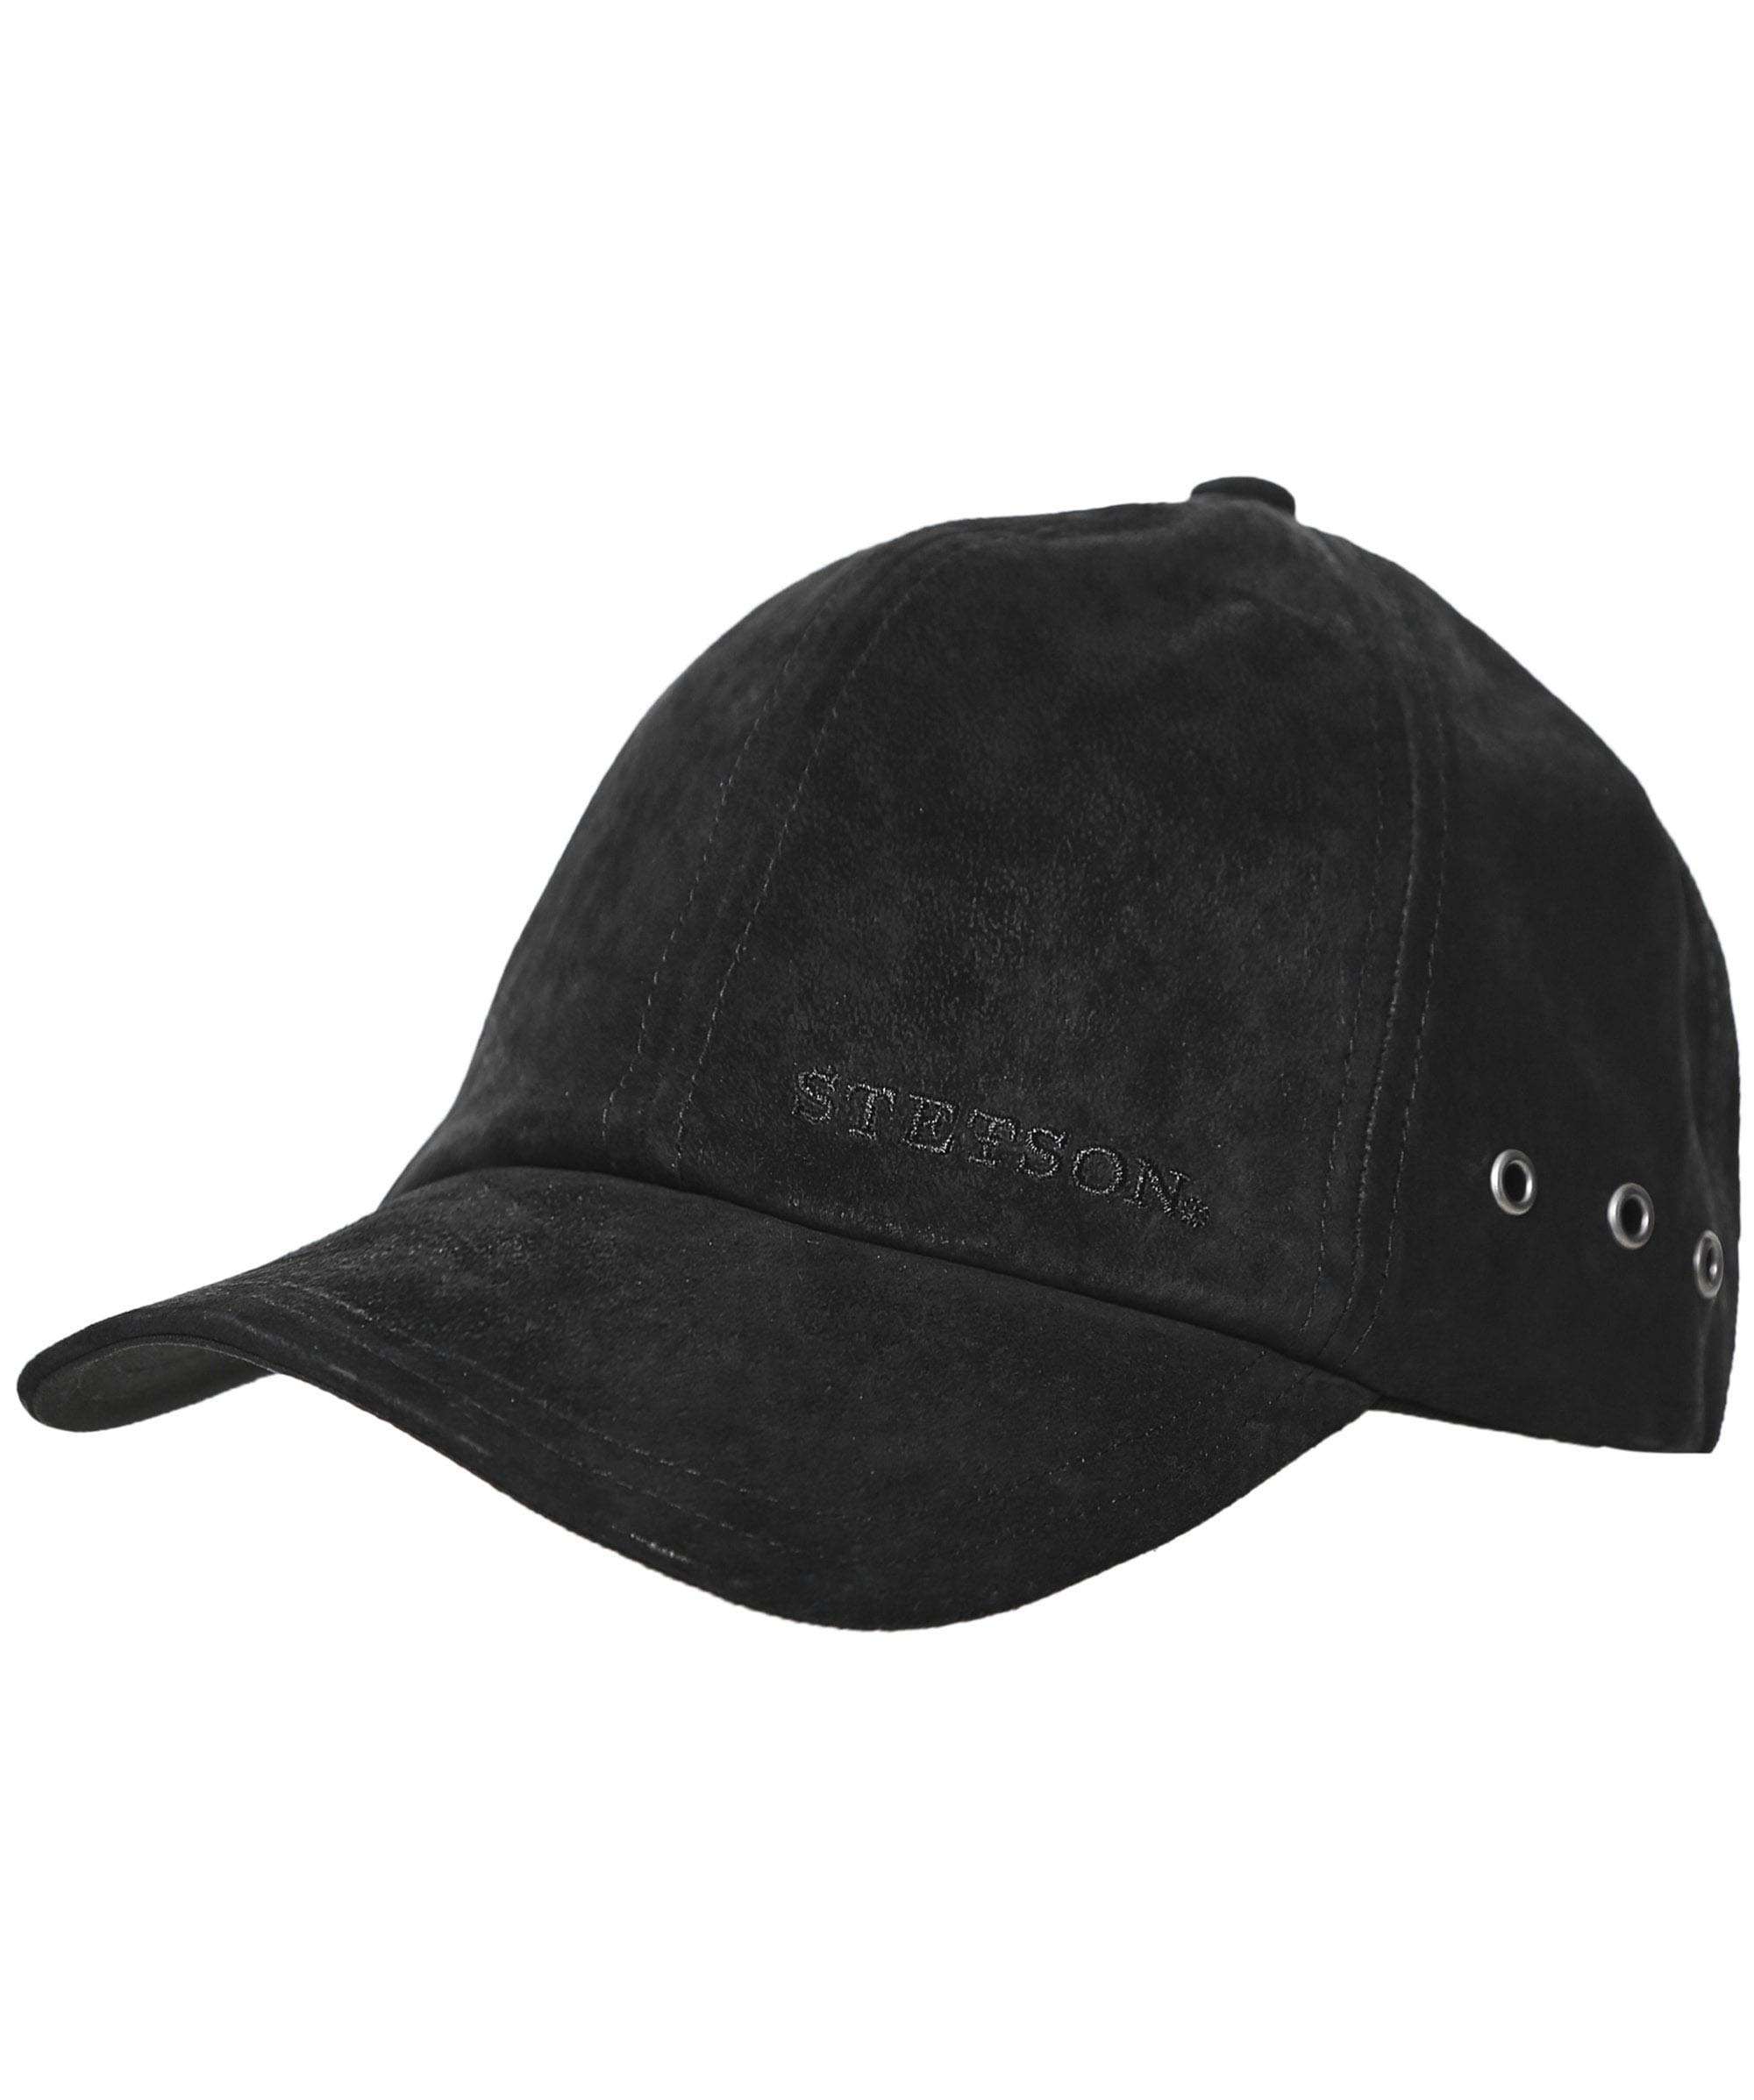 Stetson Men's Leather Baseball Cap (Black)